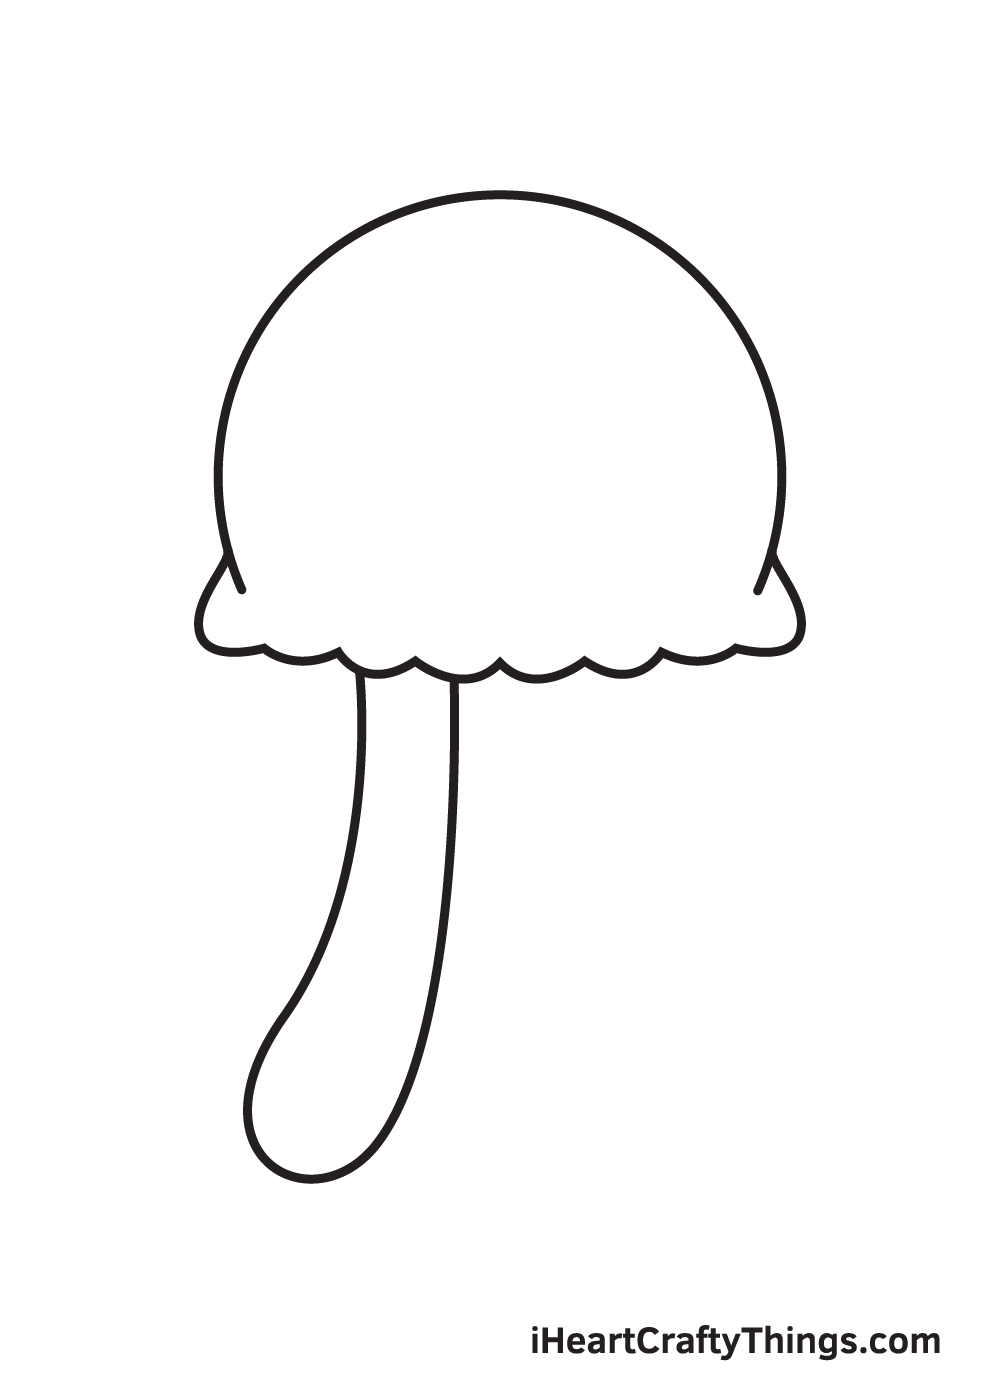 jellyfish drawing step 3